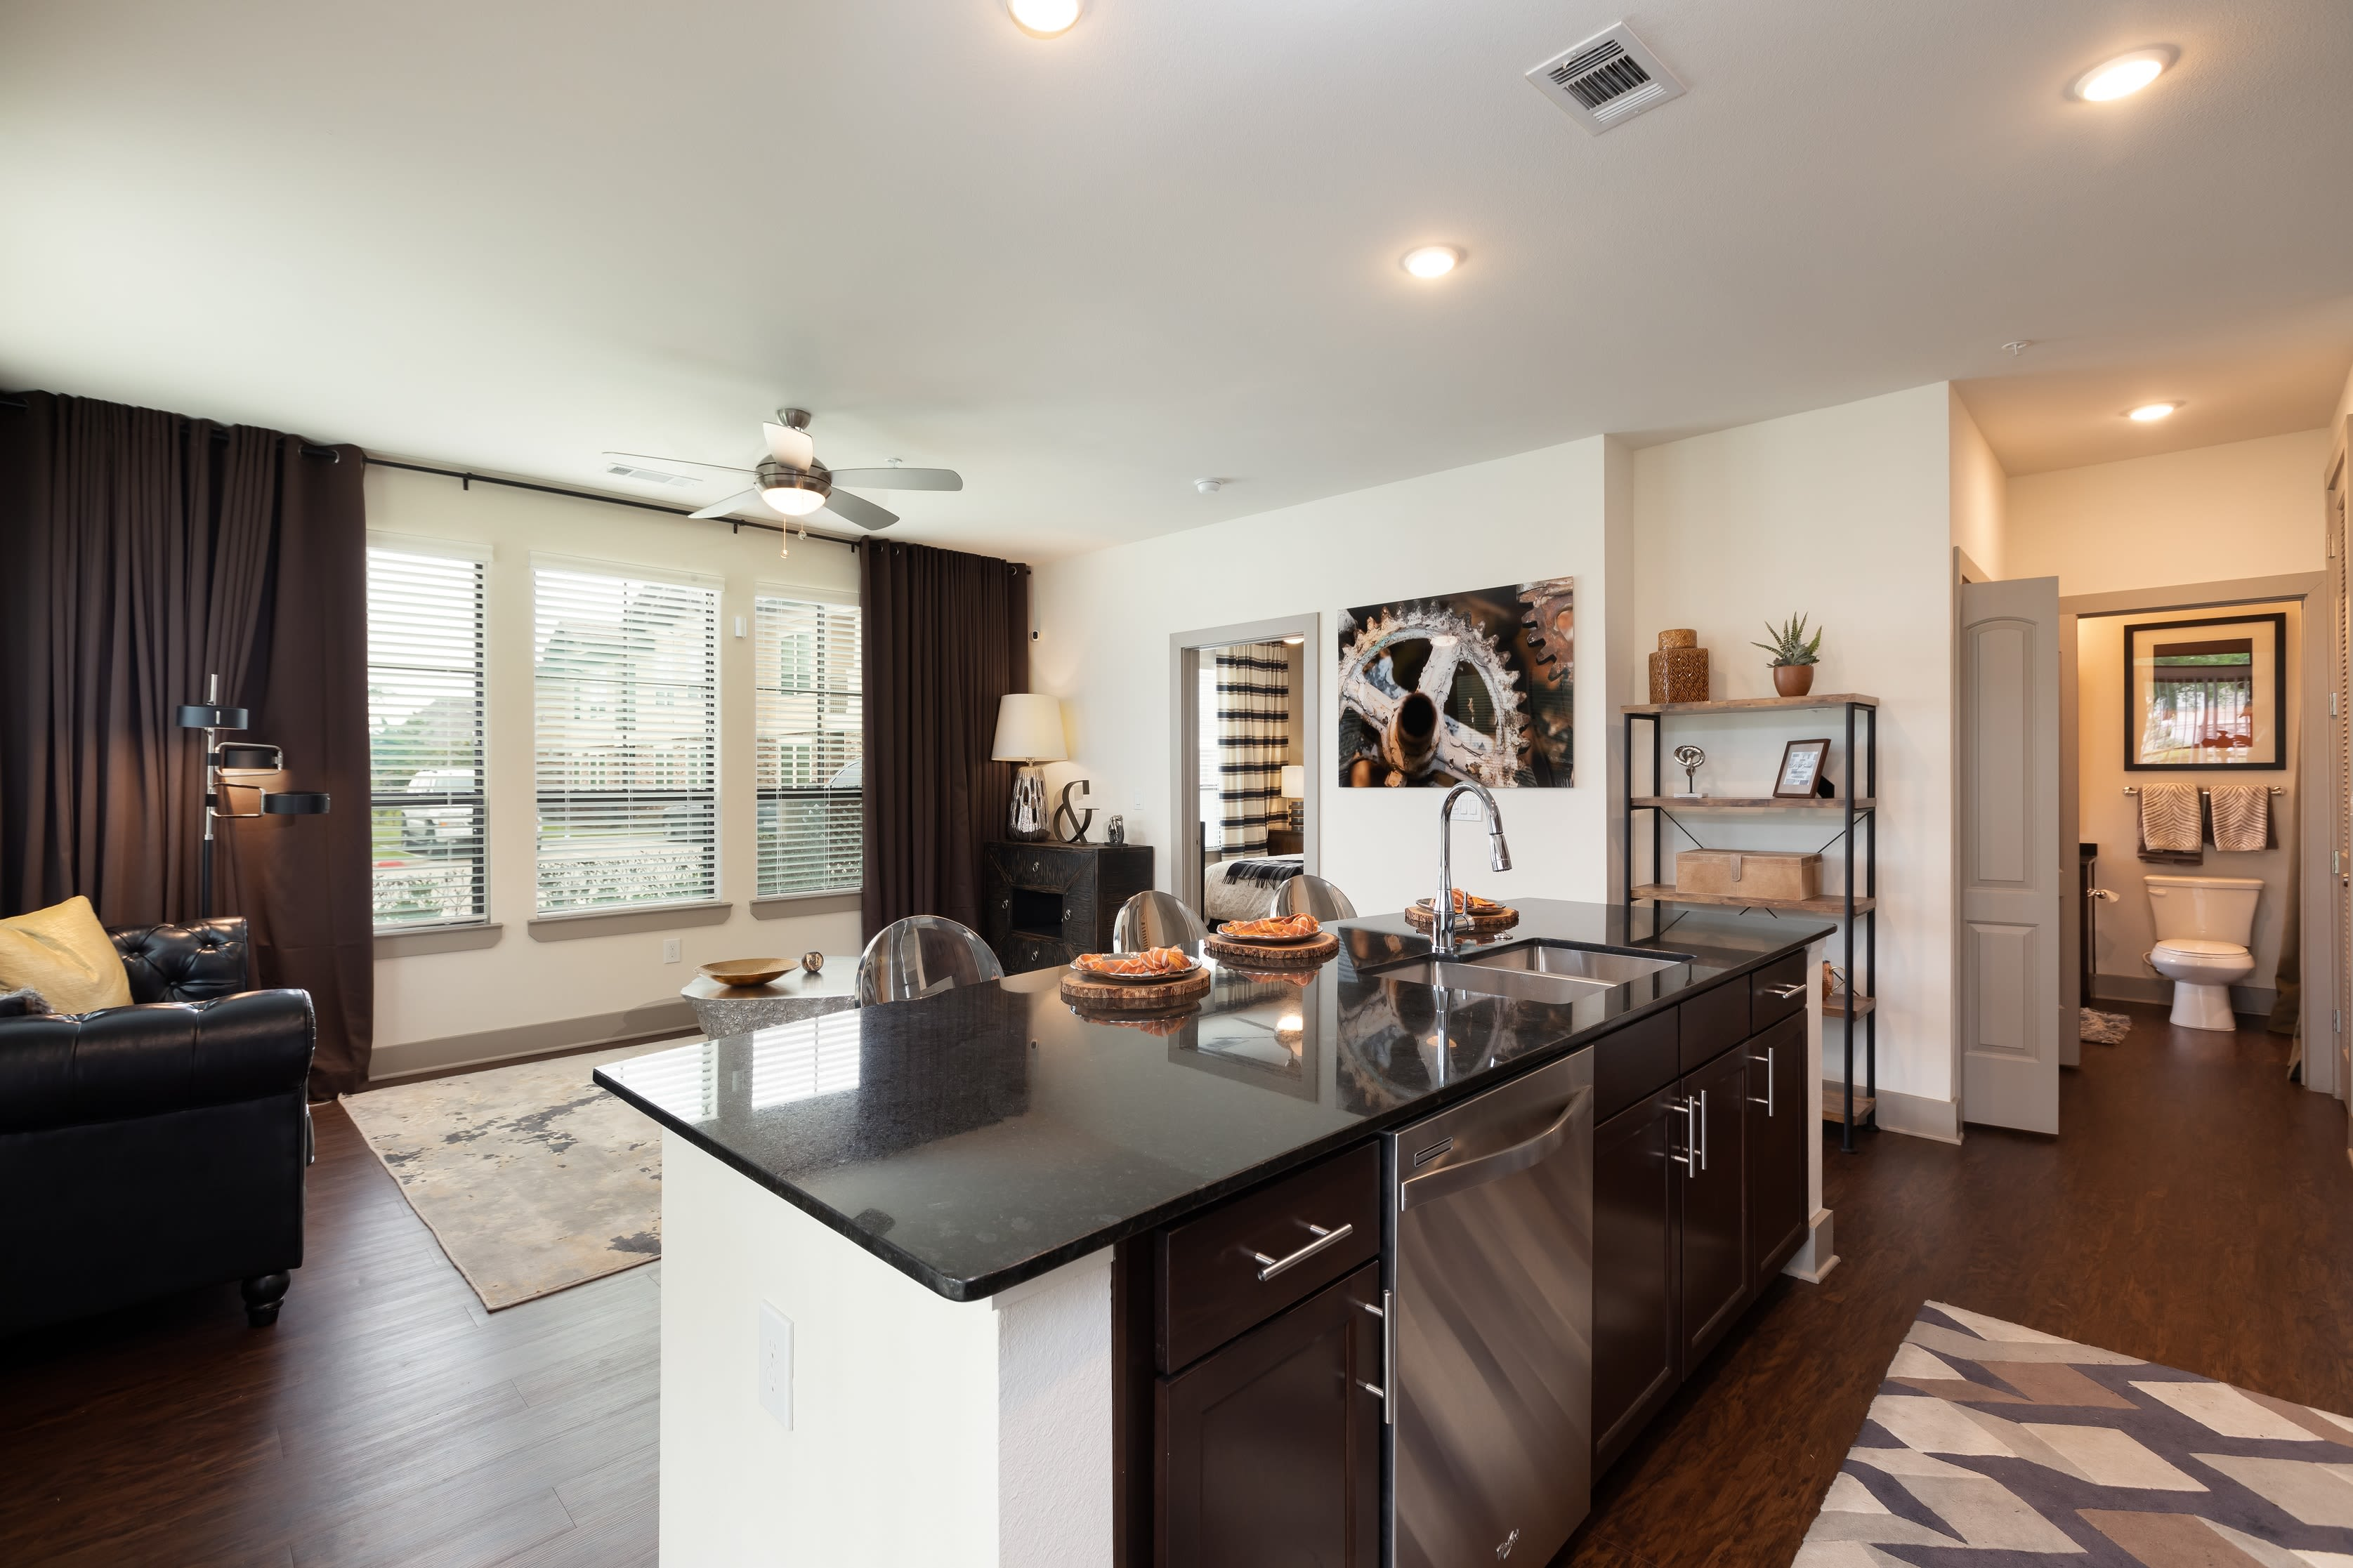 Well-furnished kitchen area with hardwood floors in a model home at Waterford Trails in Spring, Texas